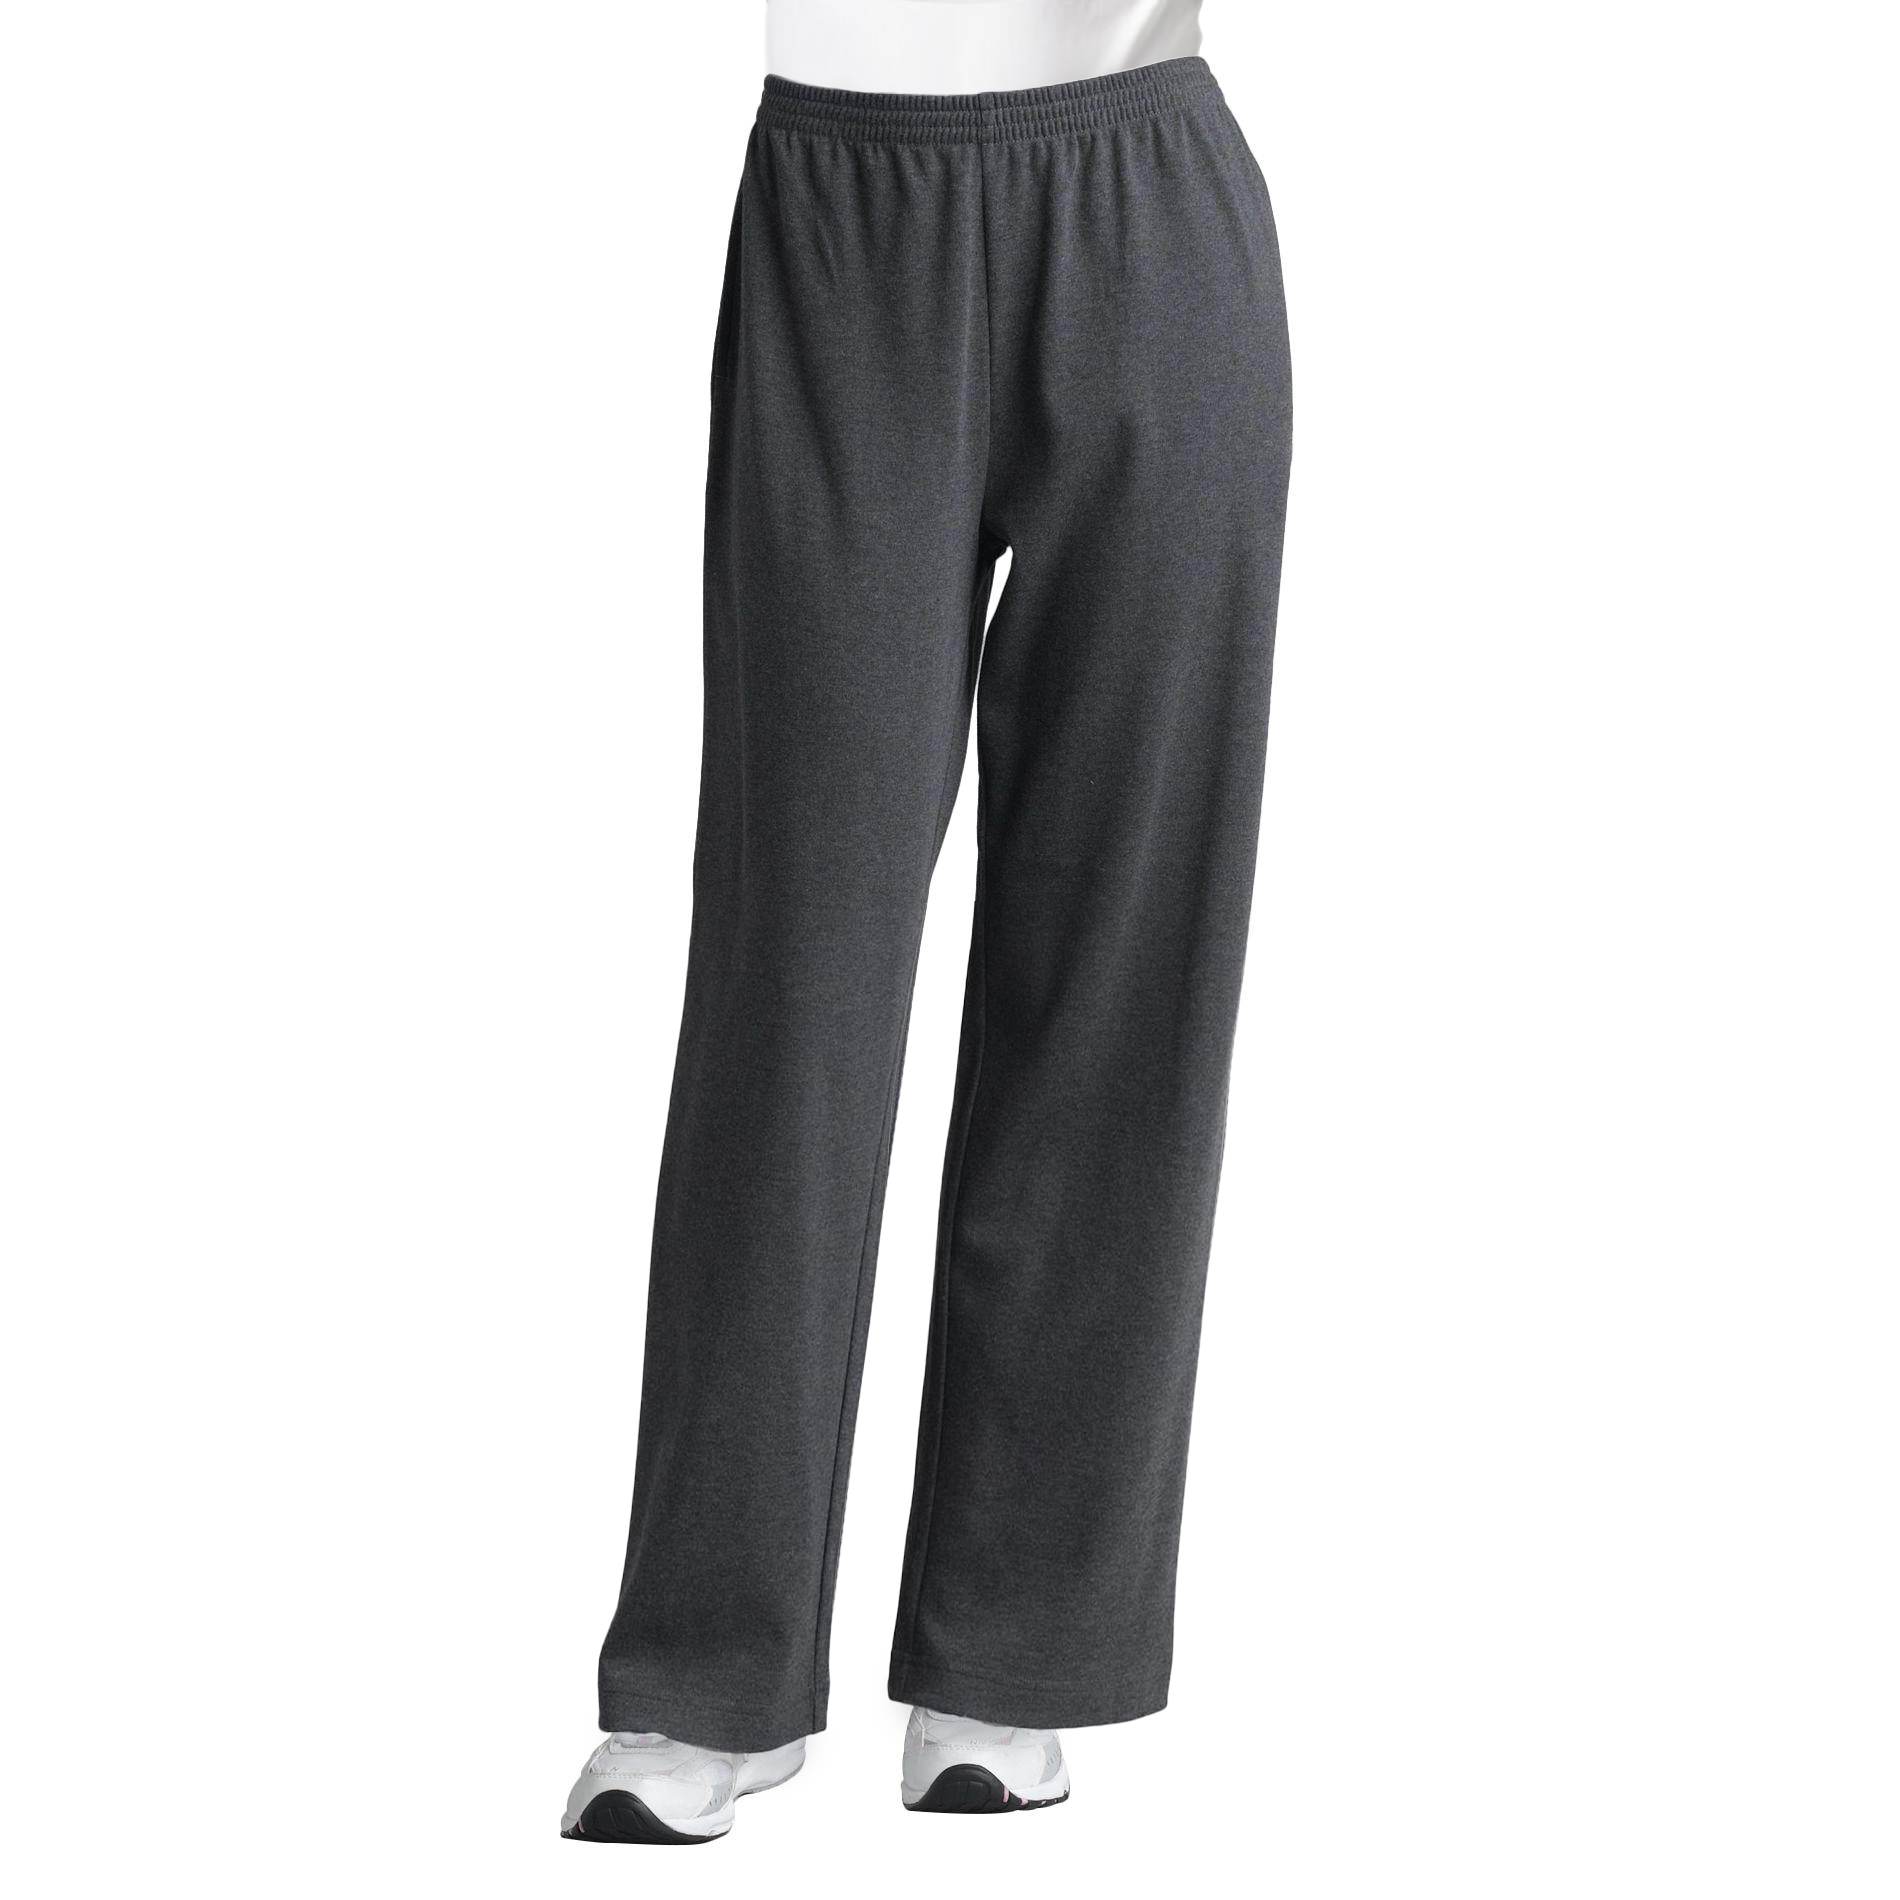 Laura Scott Women's Petite Knit Pants